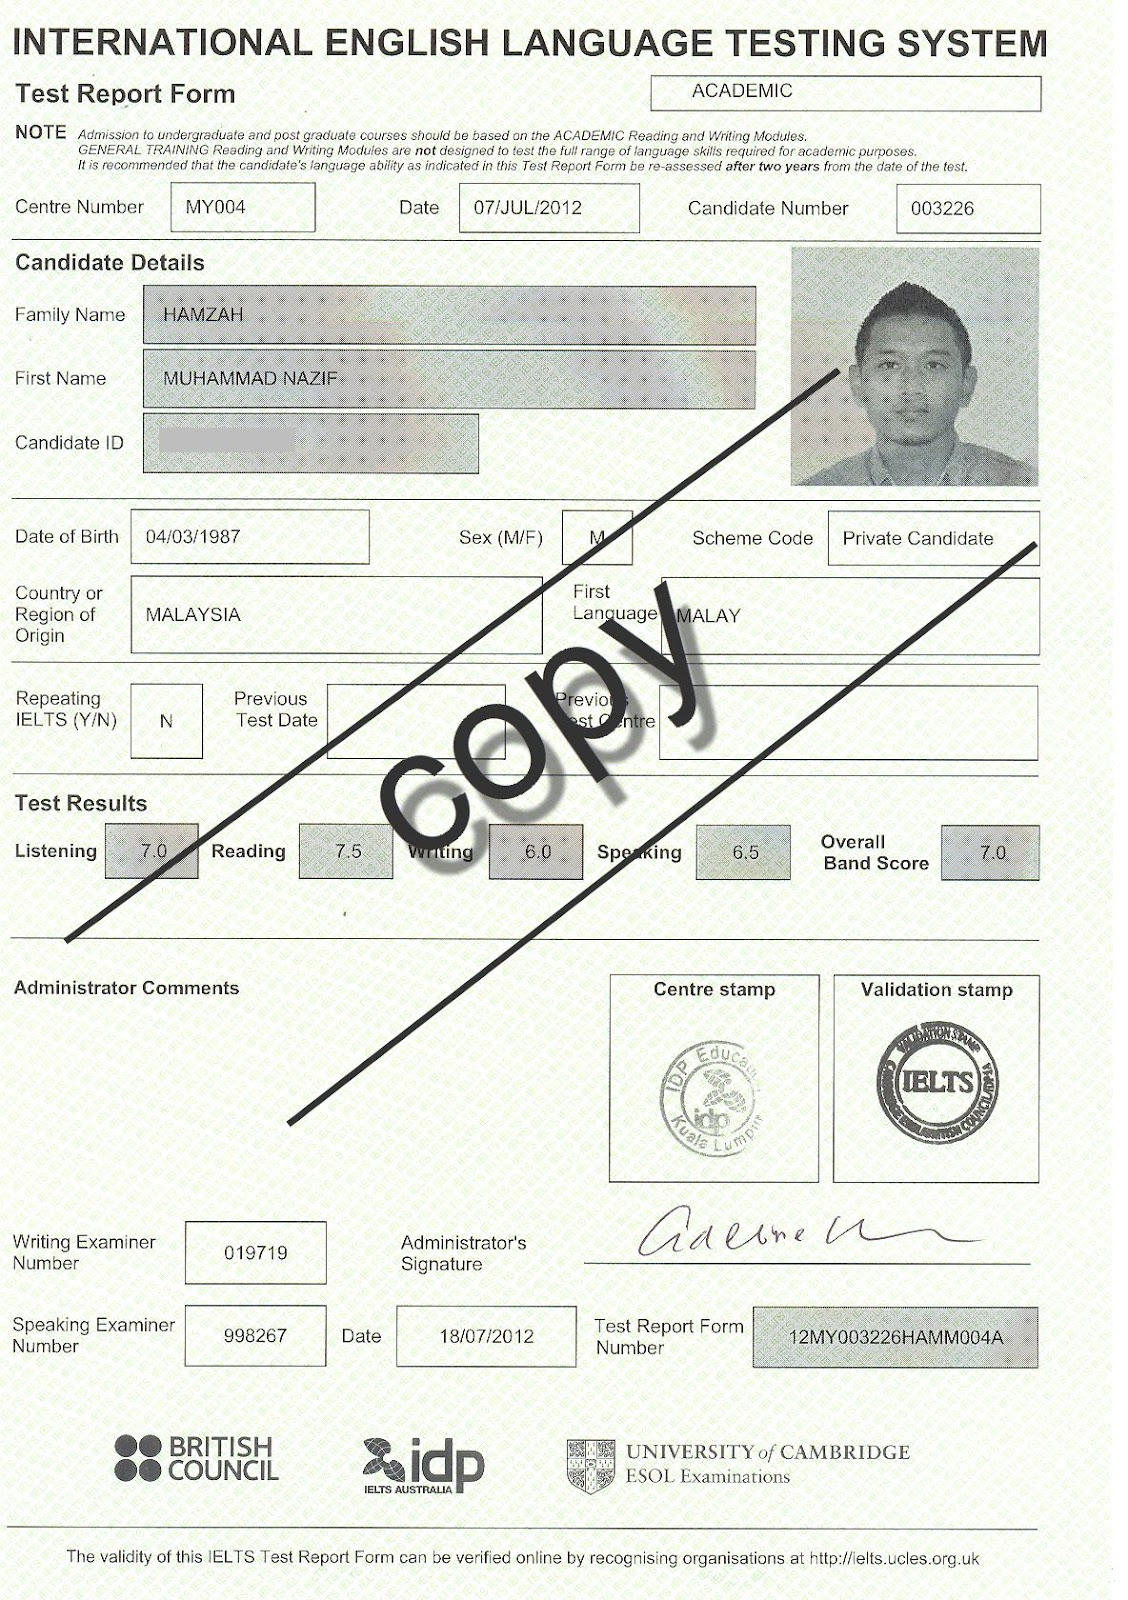 aWesome photo Blog!!: Full IELTS Result 2012